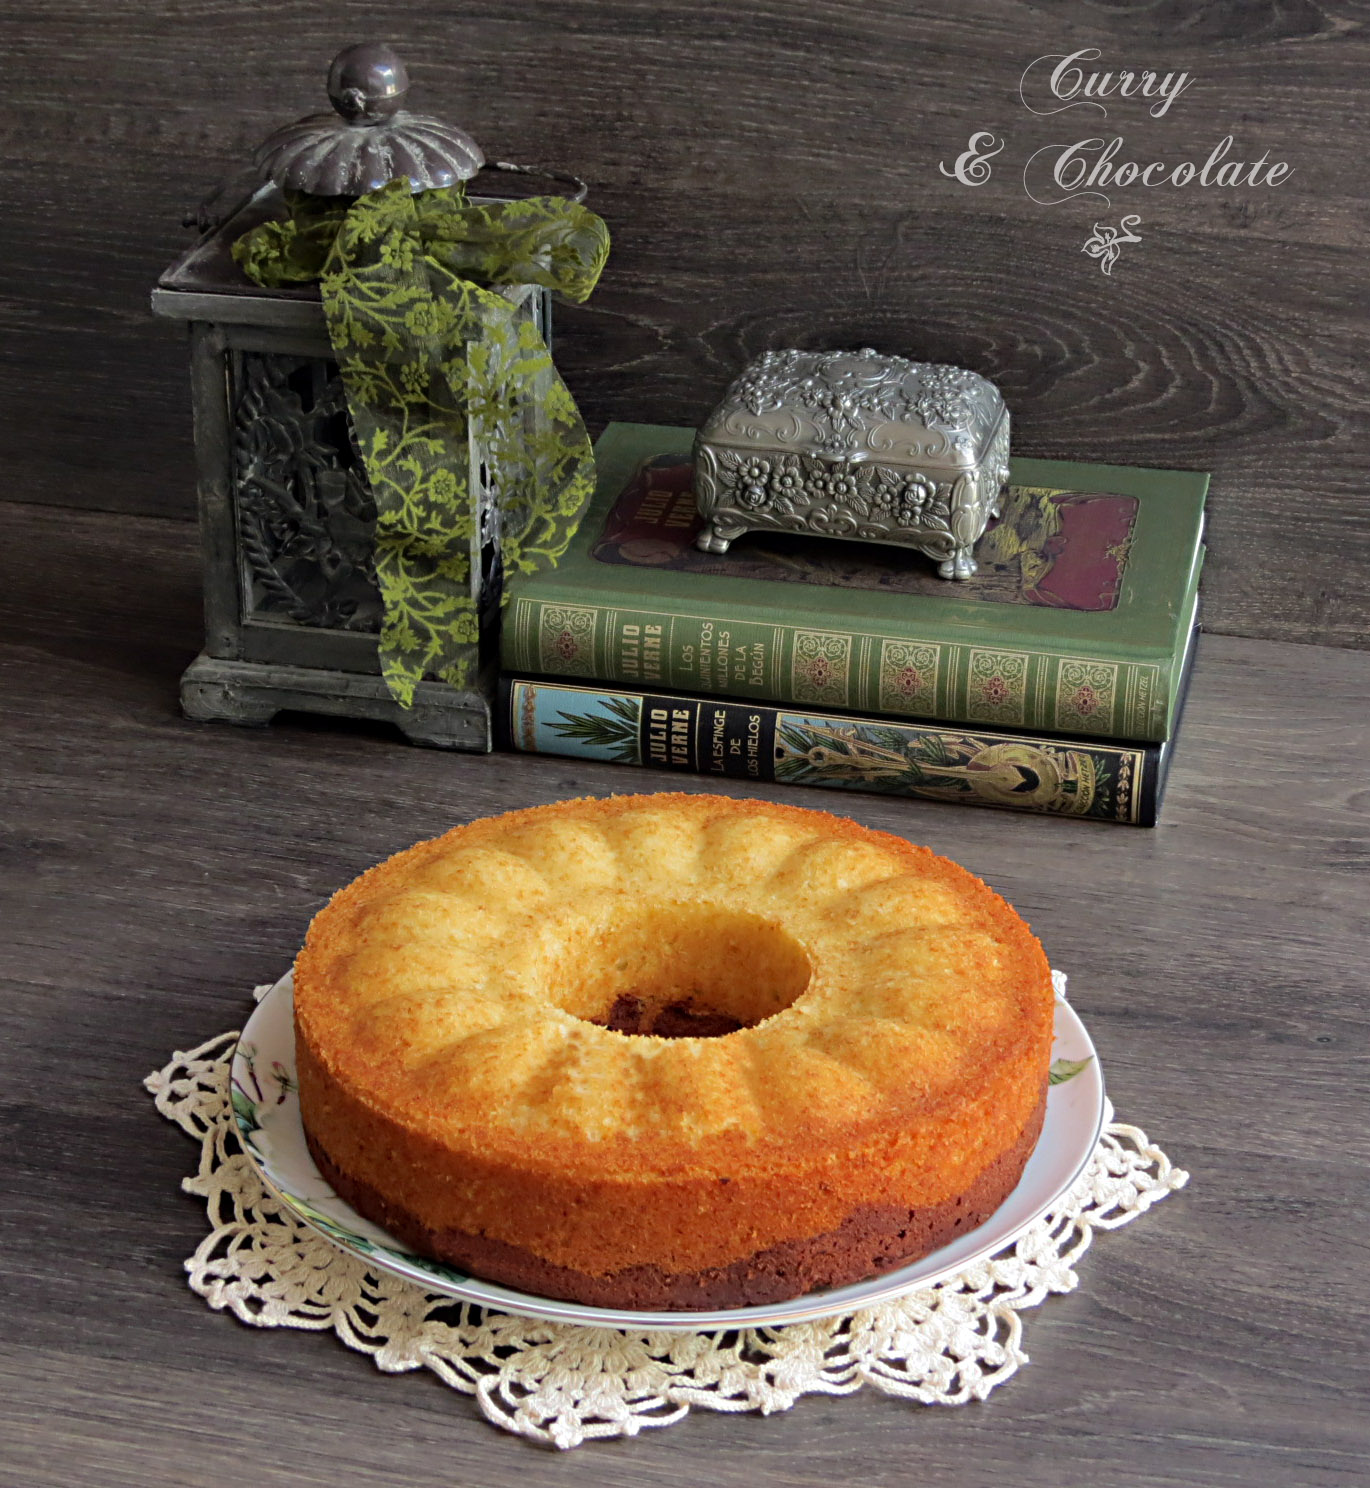 Bizcocho de mascarpone y chocolate – Mascarpone and chocolate bundt cake